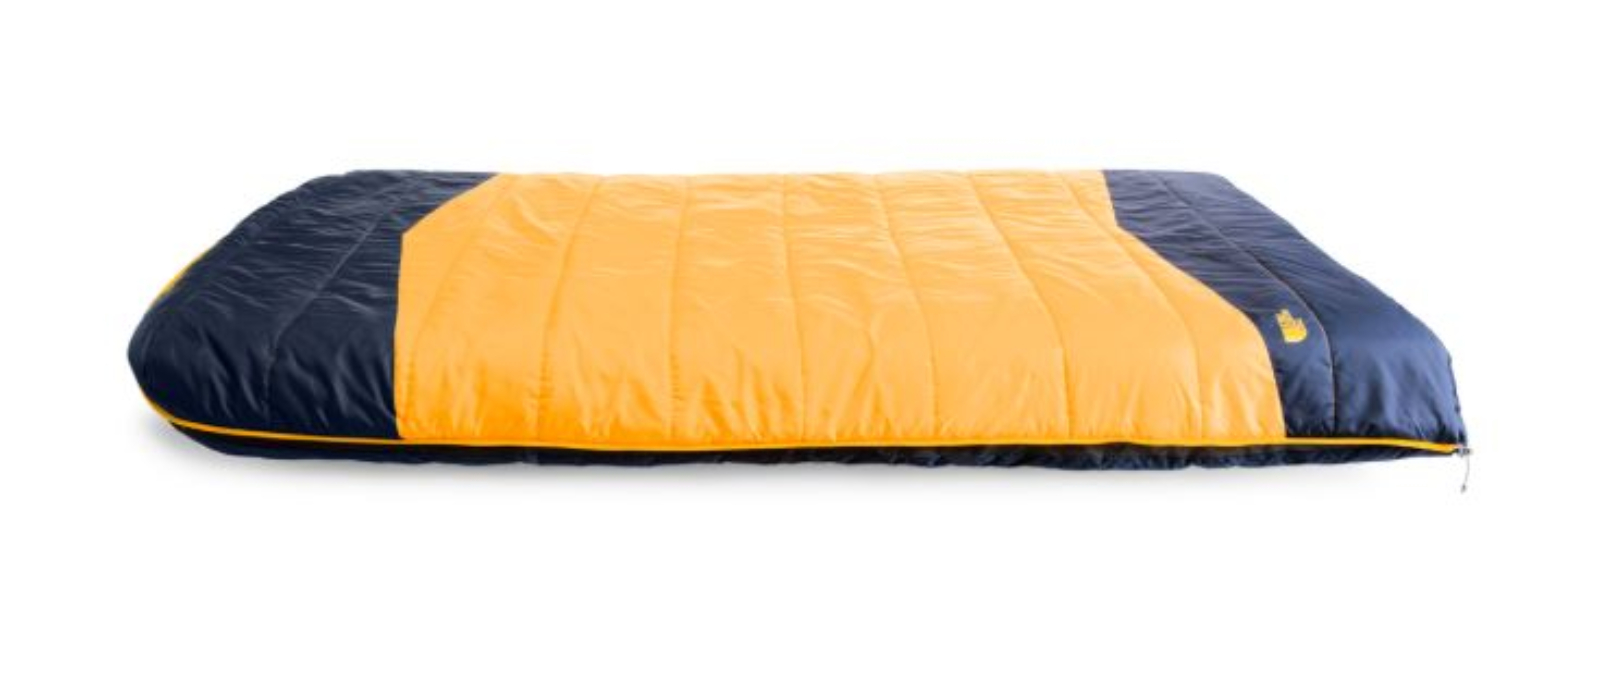 The North Face-Dolomite One Double